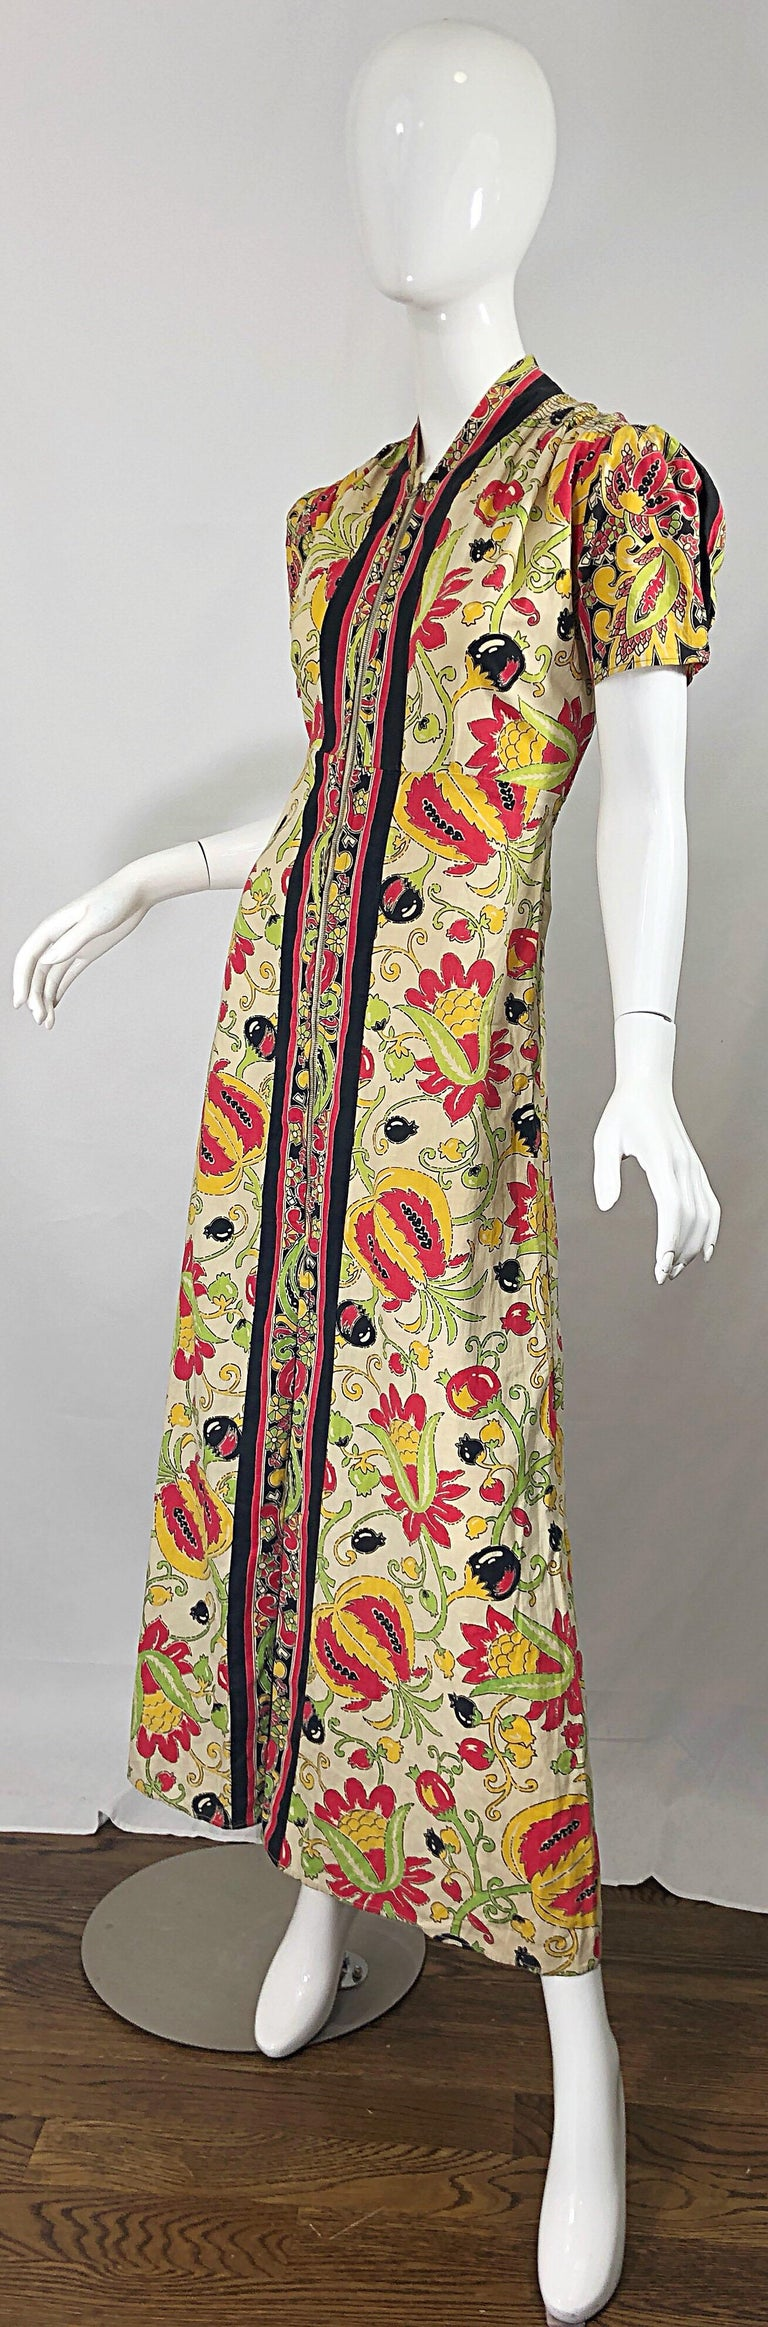 Amazing 1940s Botanical Asian Inspired Paisley Cotton + Linen 40s Maxi Dress For Sale 3